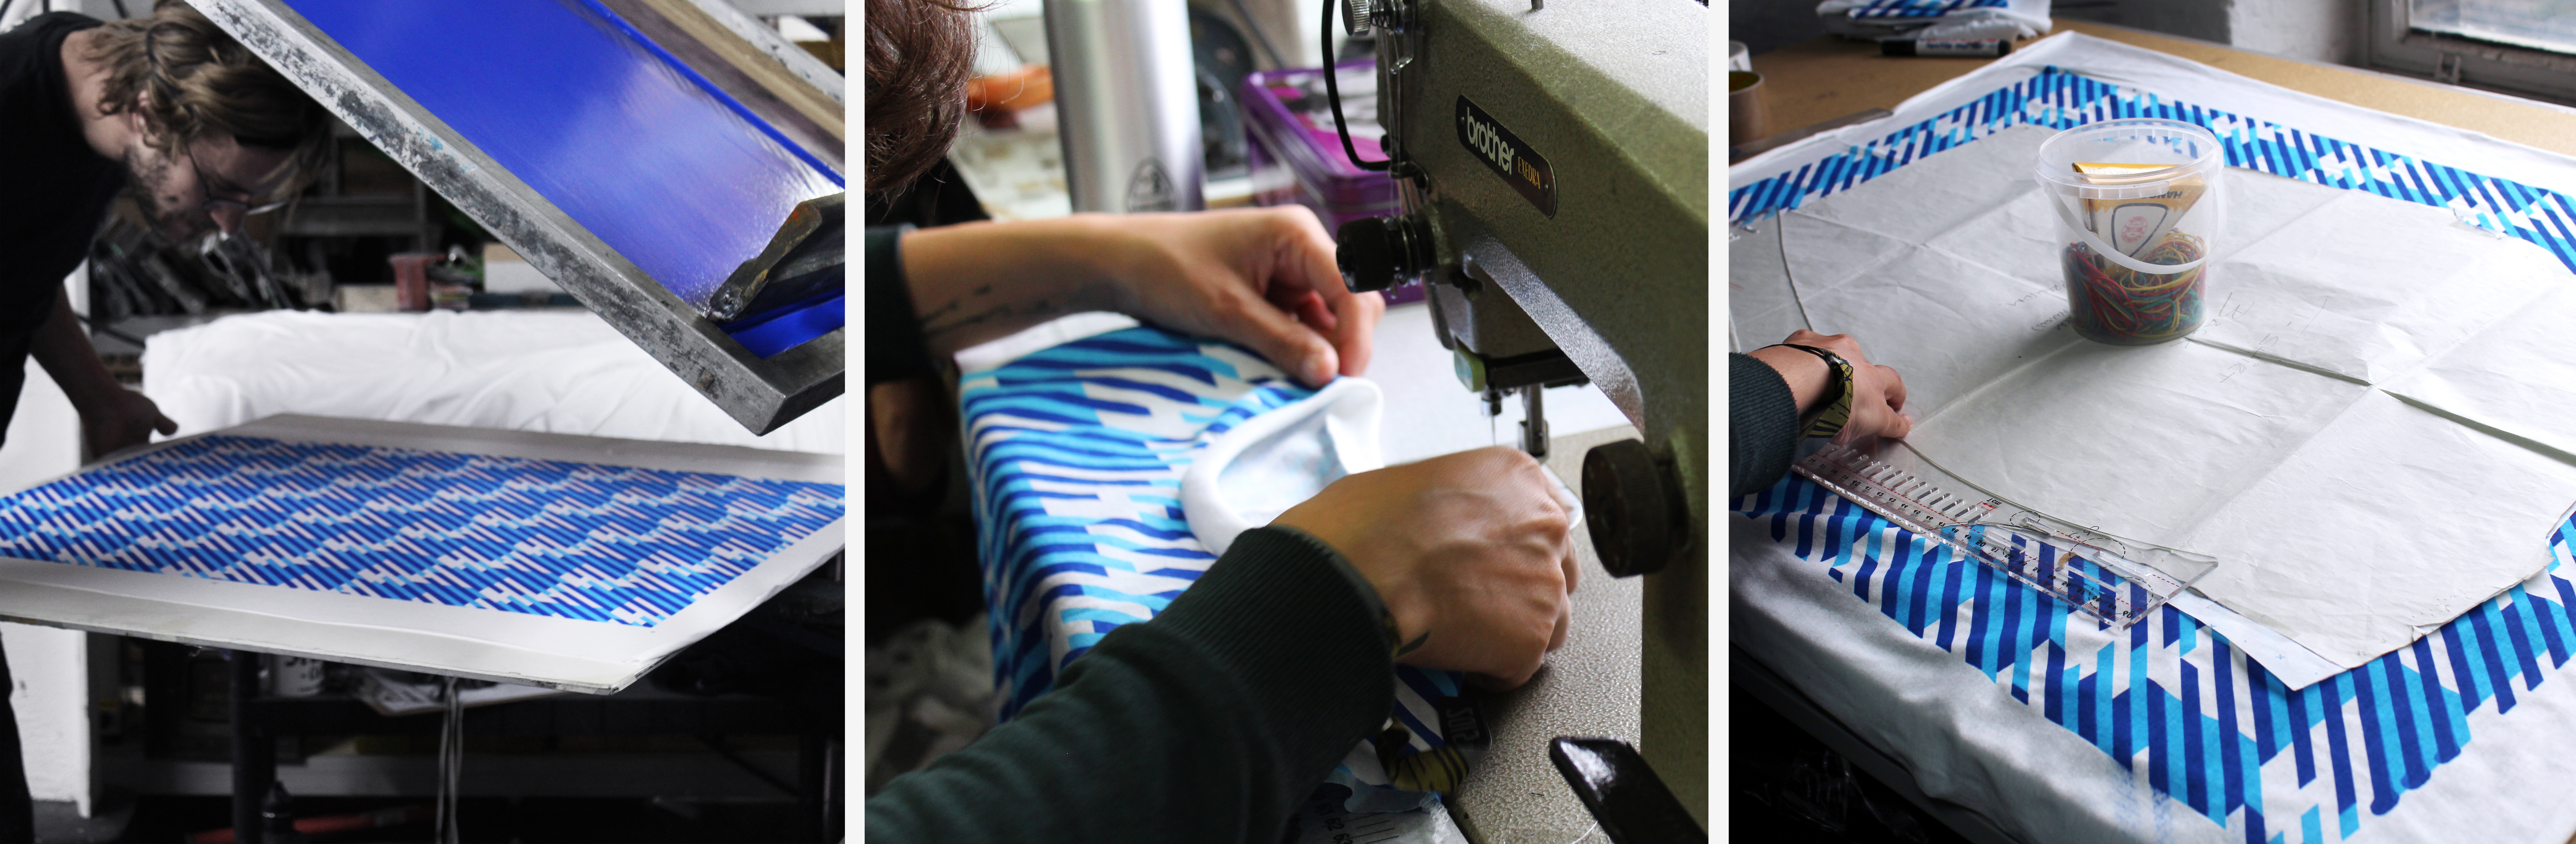 cut and sew process photos for a t-shirt